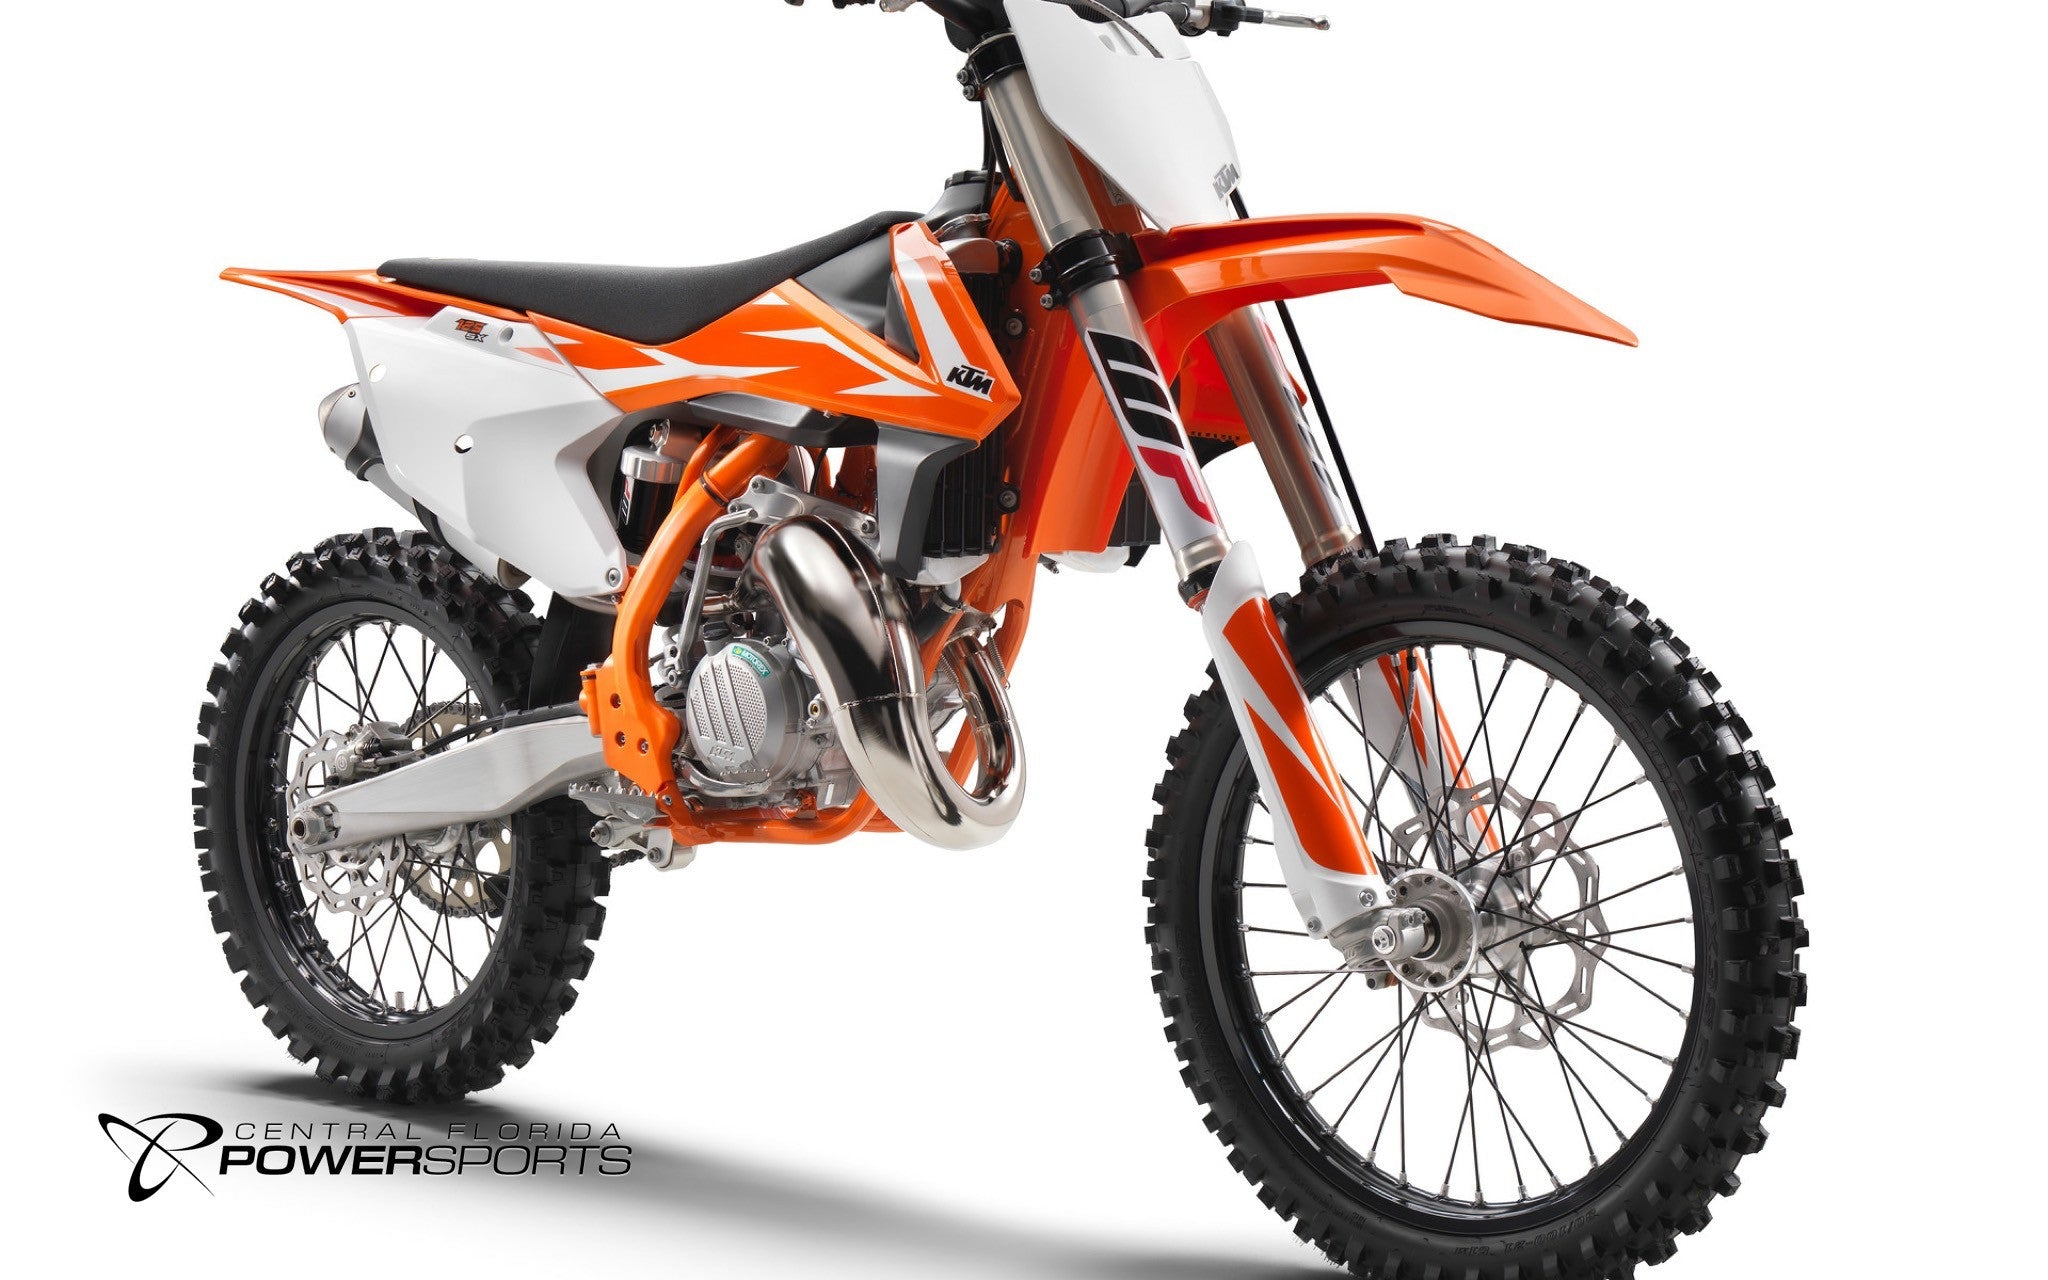 2018 ktm 125 sx motocross motorcycle for sale kissimmee orlando central florida powersports. Black Bedroom Furniture Sets. Home Design Ideas